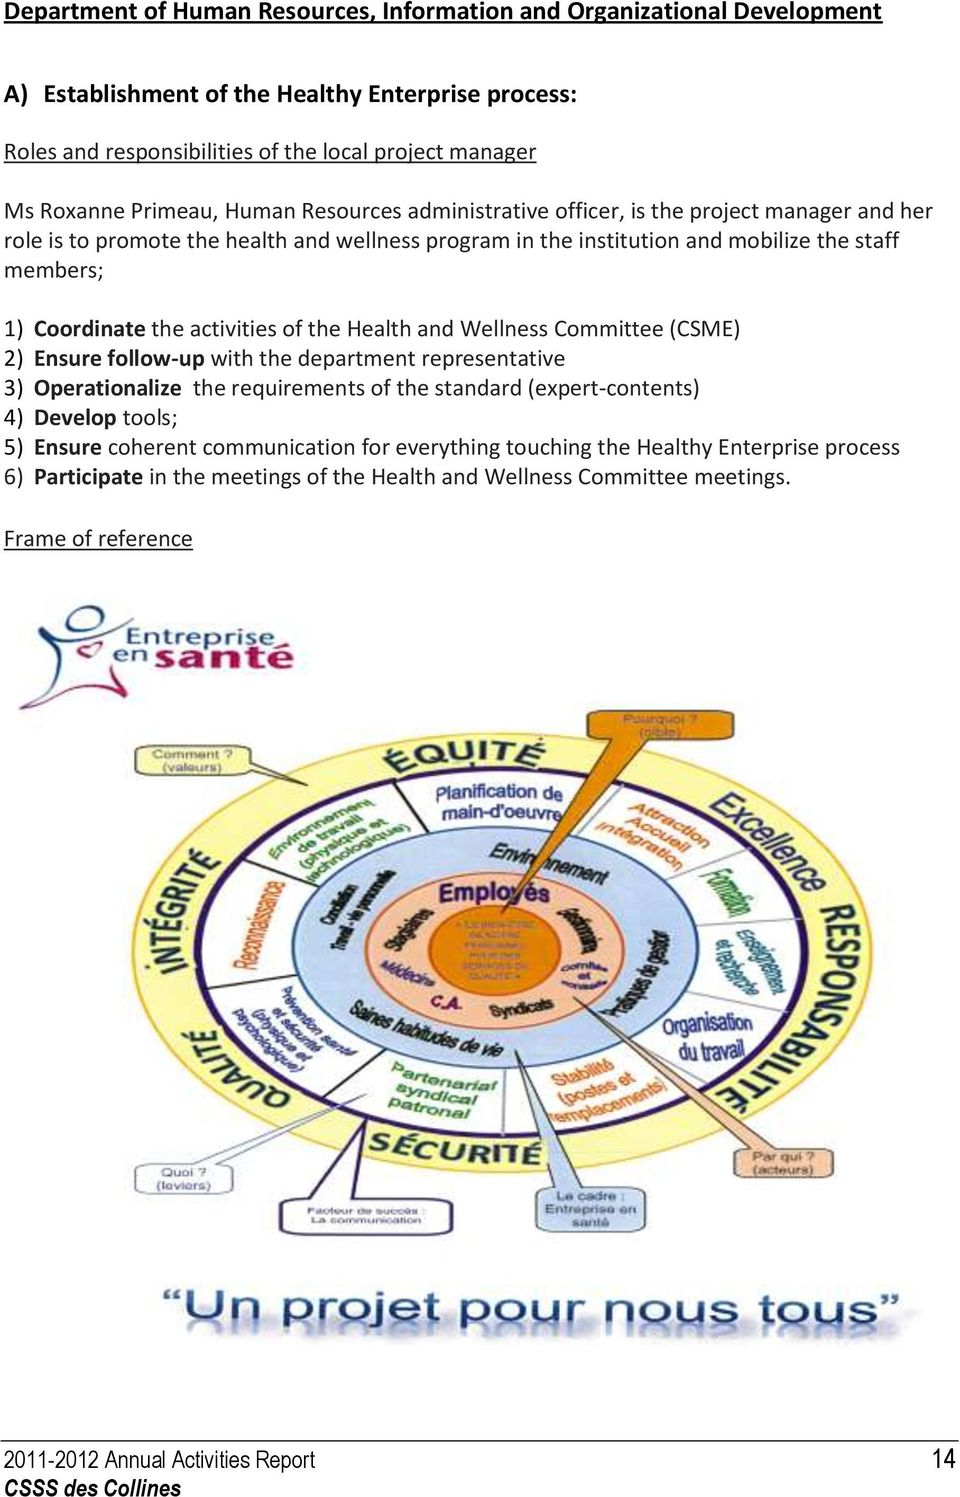 activities of the Health and Wellness Committee (CSME) 2) Ensure follow-up with the department representative 3) Operationalize the requirements of the standard (expert-contents) 4) Develop tools; 5)